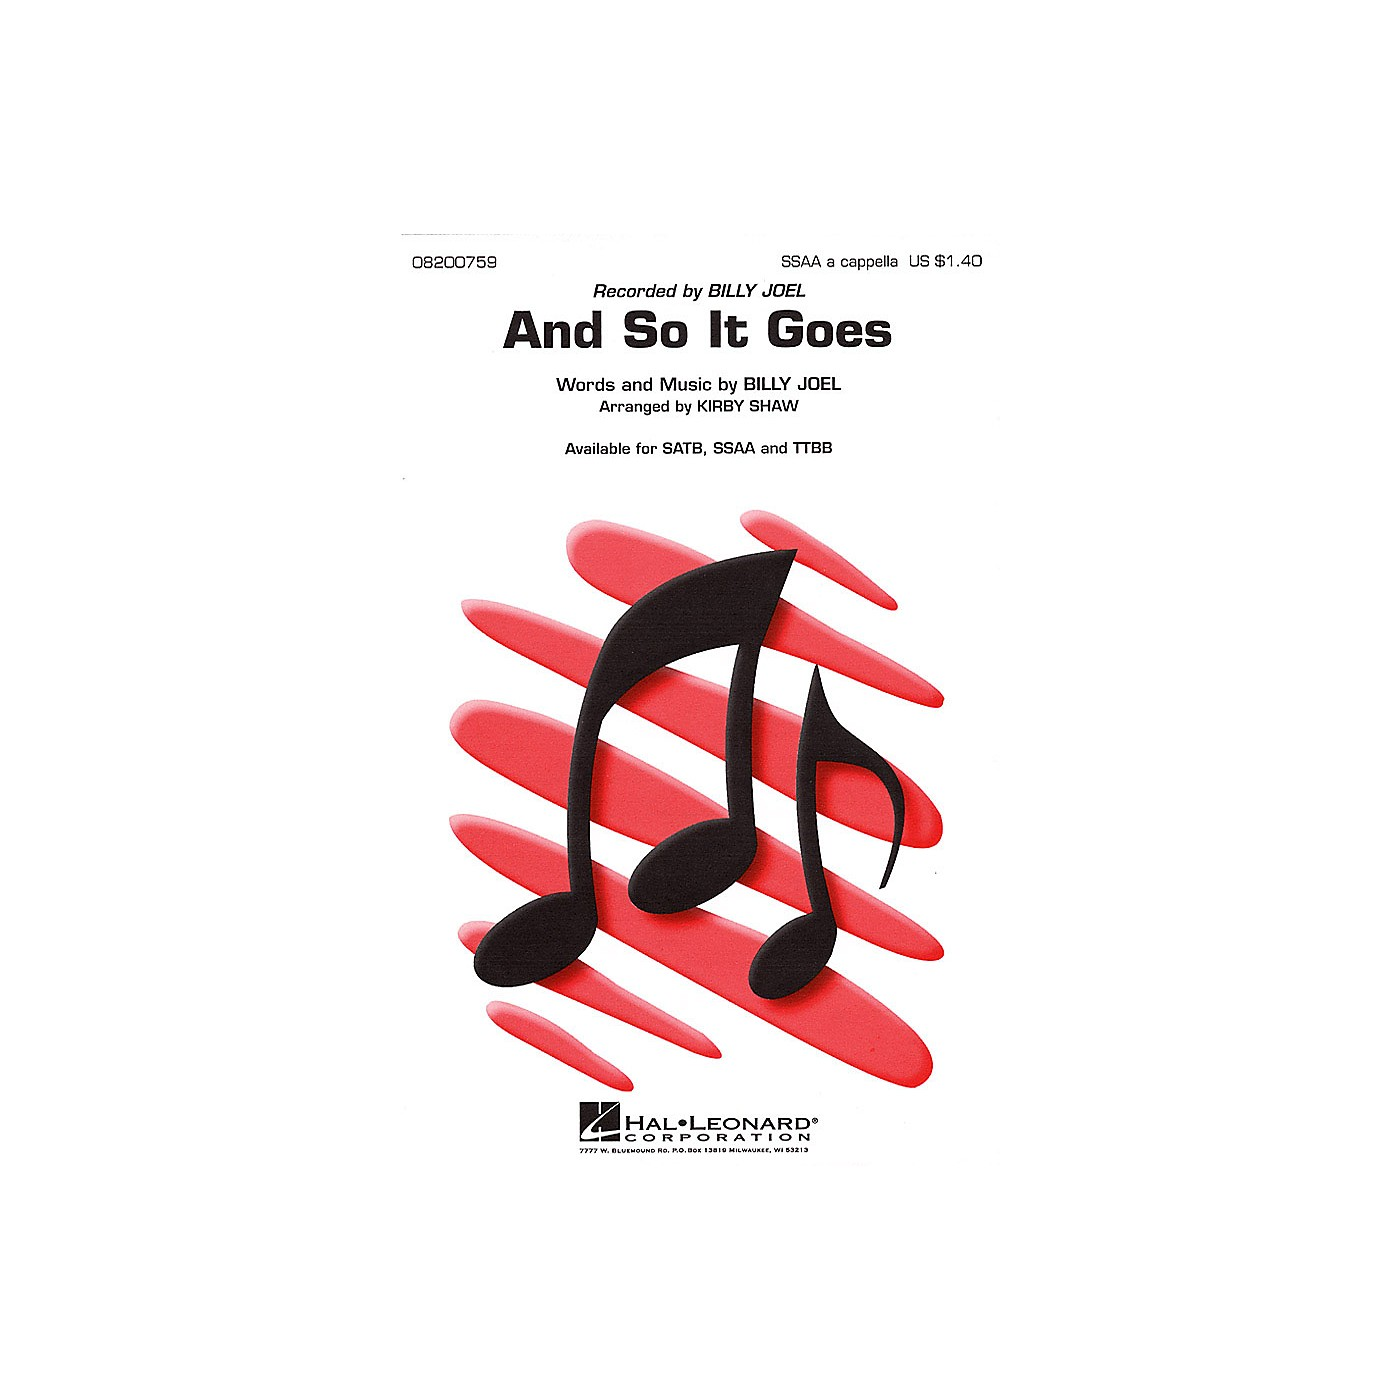 Hal Leonard And So It Goes SATB a cappella by Billy Joel Arranged by Kirby Shaw thumbnail